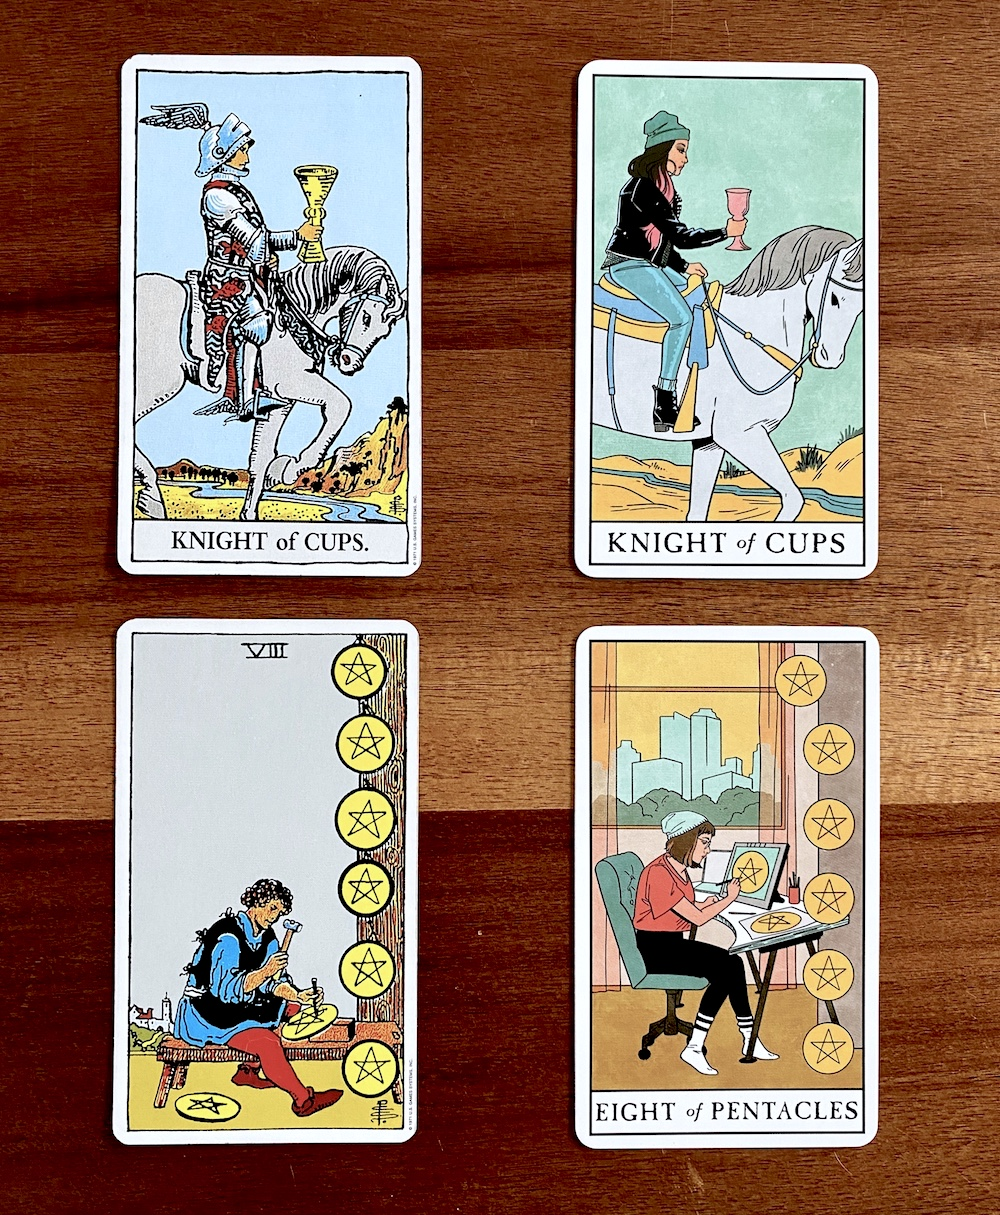 How to Choose a Tarot Deck for Beginners | Happy As Annie - The Modern Witch Tarot Deck is a fresh, multicultural, more inclusive, and millennial-friendly update to the classic Rider-Waite tarot deck. (Knight of Cups and 8 of Pentacles tarot cards from two differnet decks side by side)